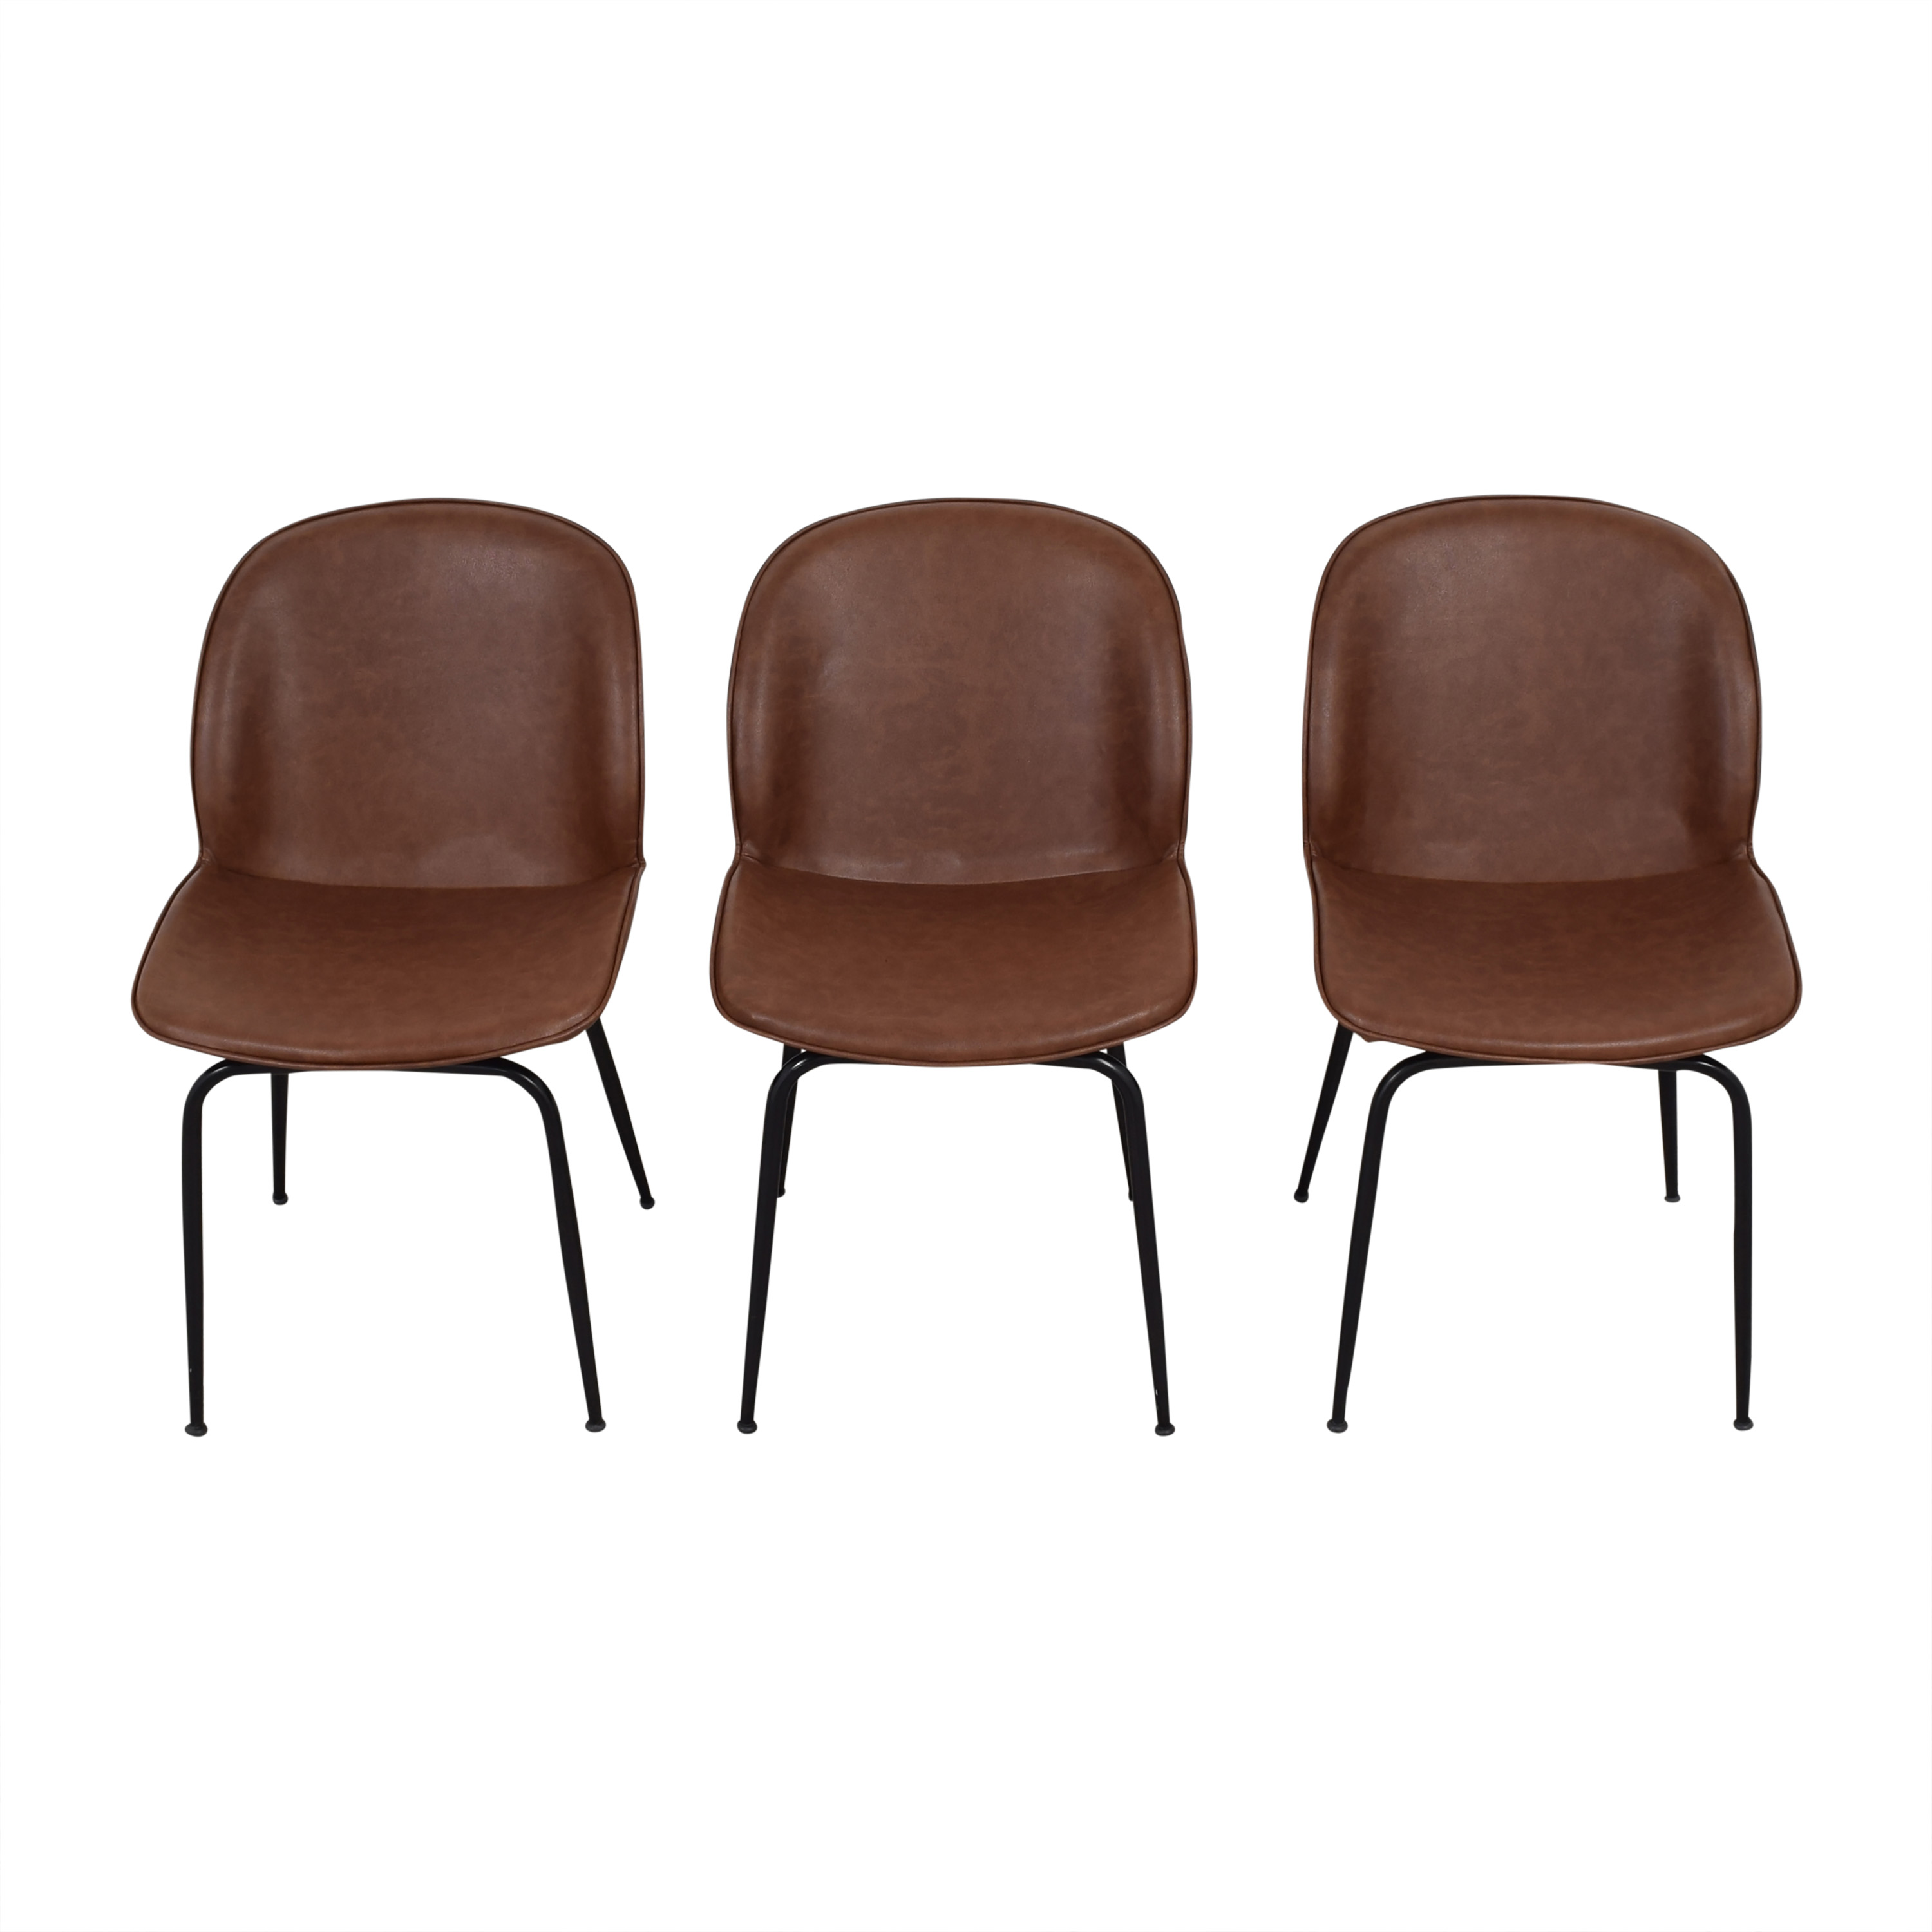 Upholstered Modern Dining Chairs nj